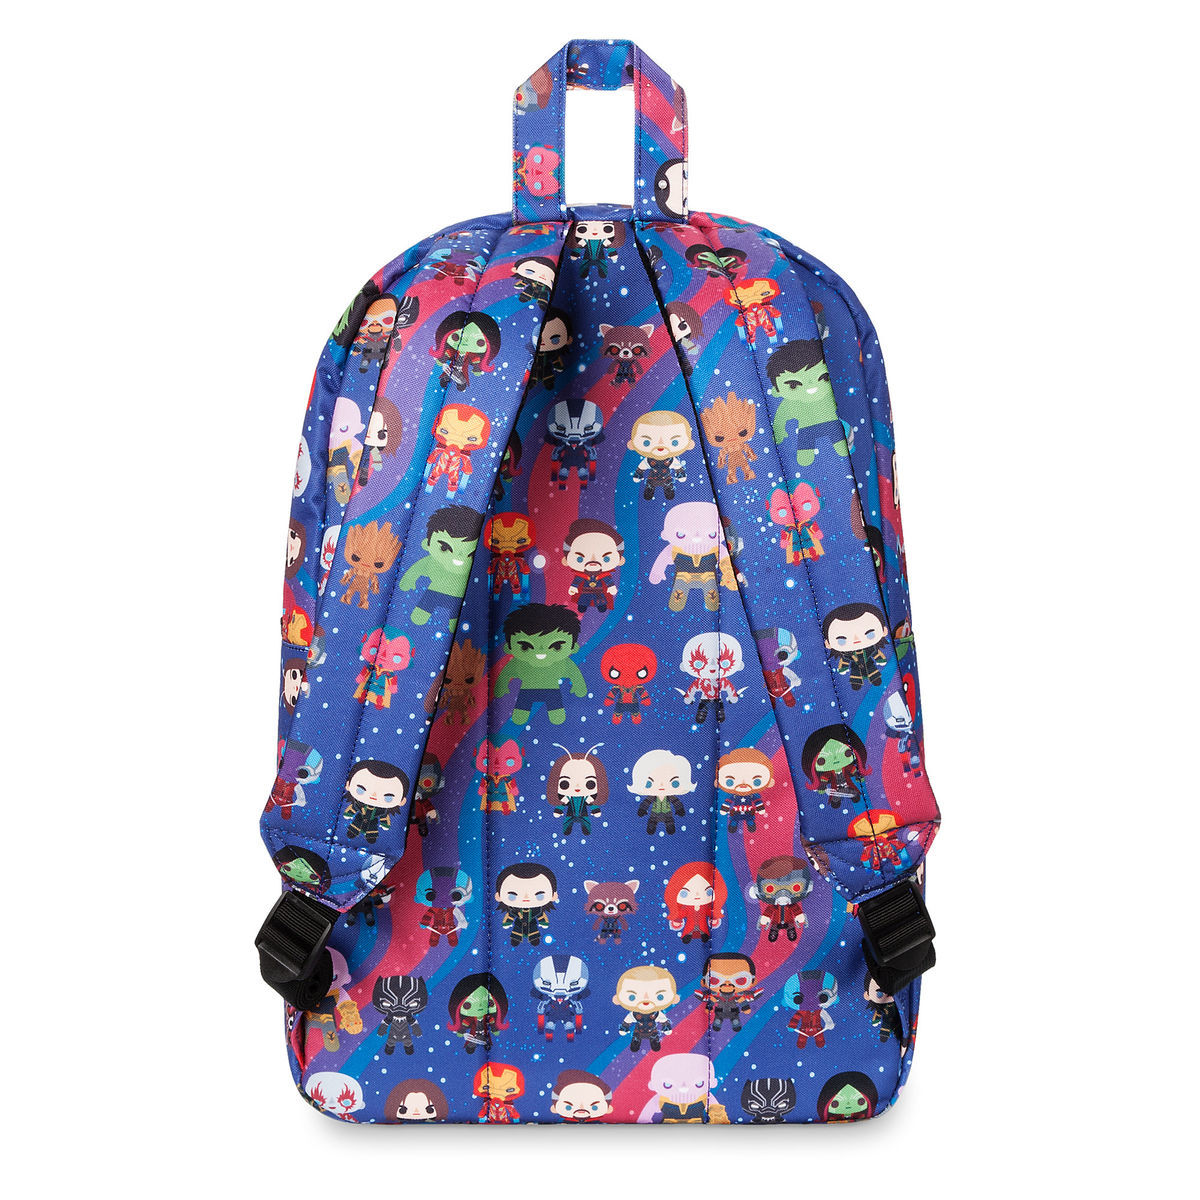 Marvel s Avengers  Infinity War Backpack by Loungefly  97536b28c490b